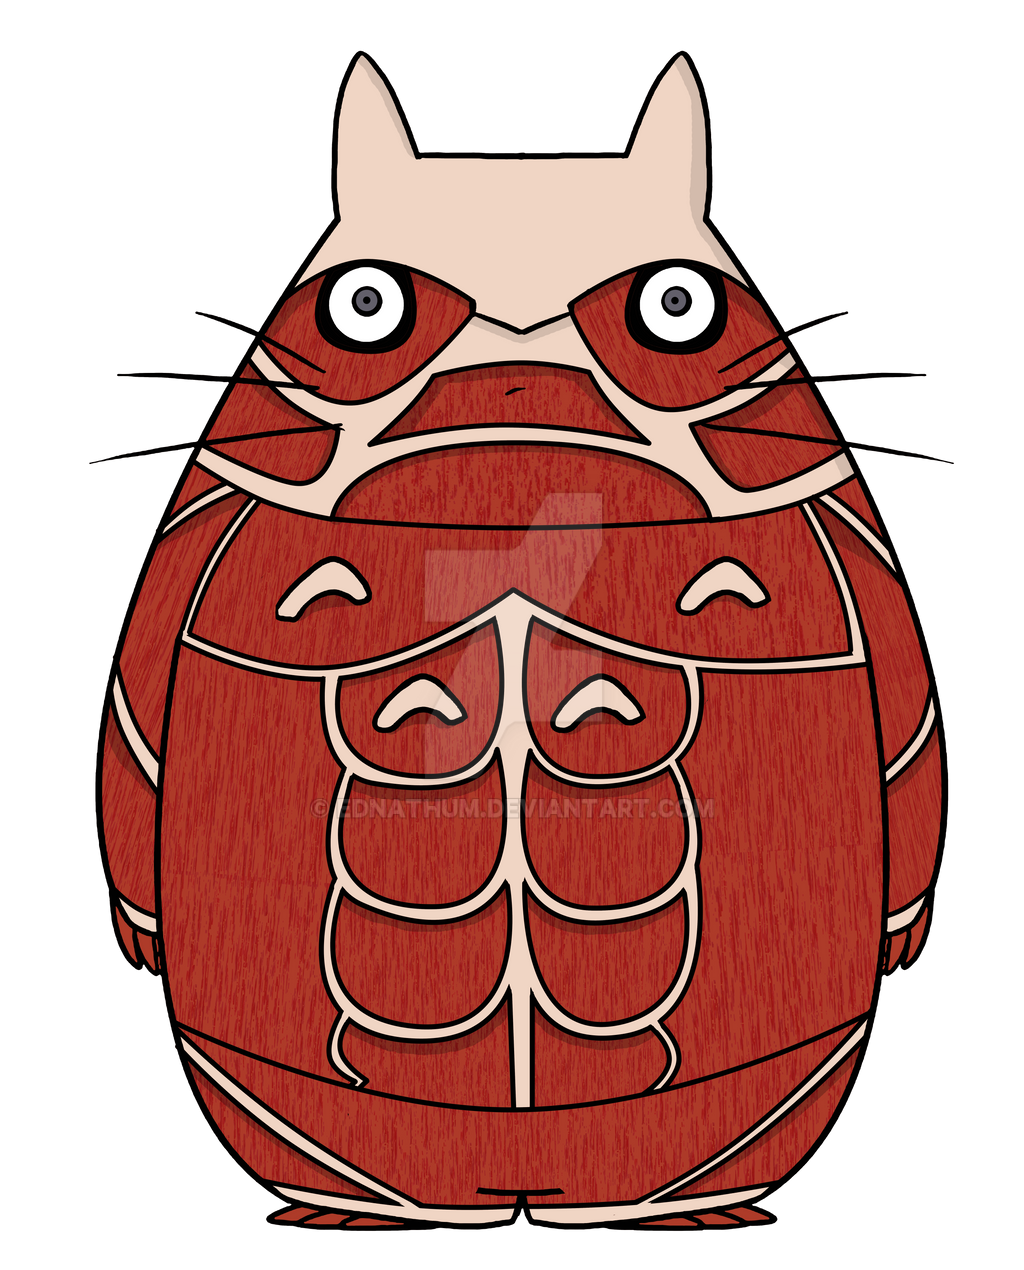 attack_on_totoro_by_ednathum-d8tvkj8.png